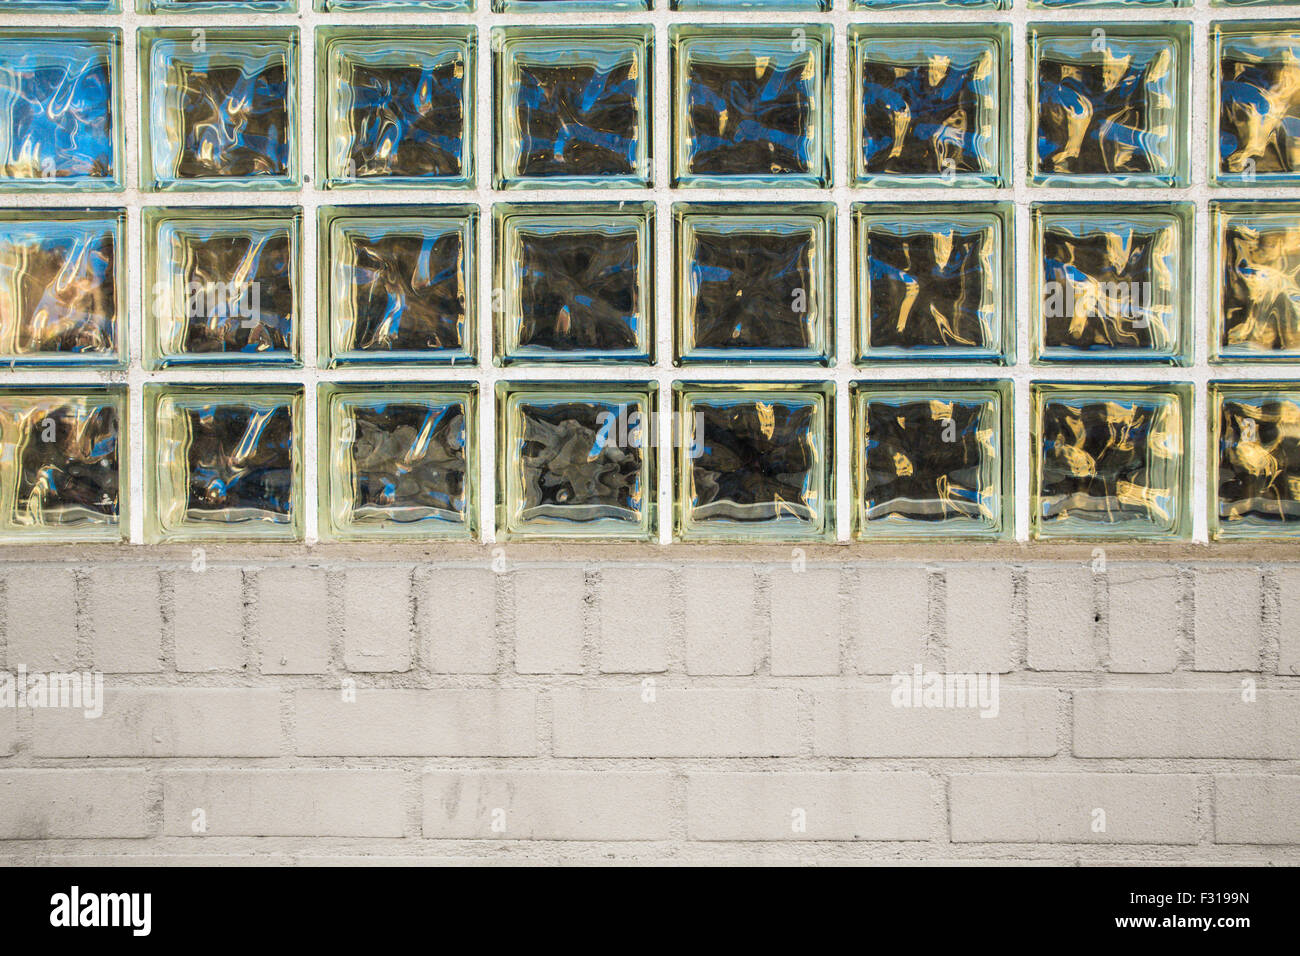 Exterior wall with privacy glass blocks and brick - Stock Image